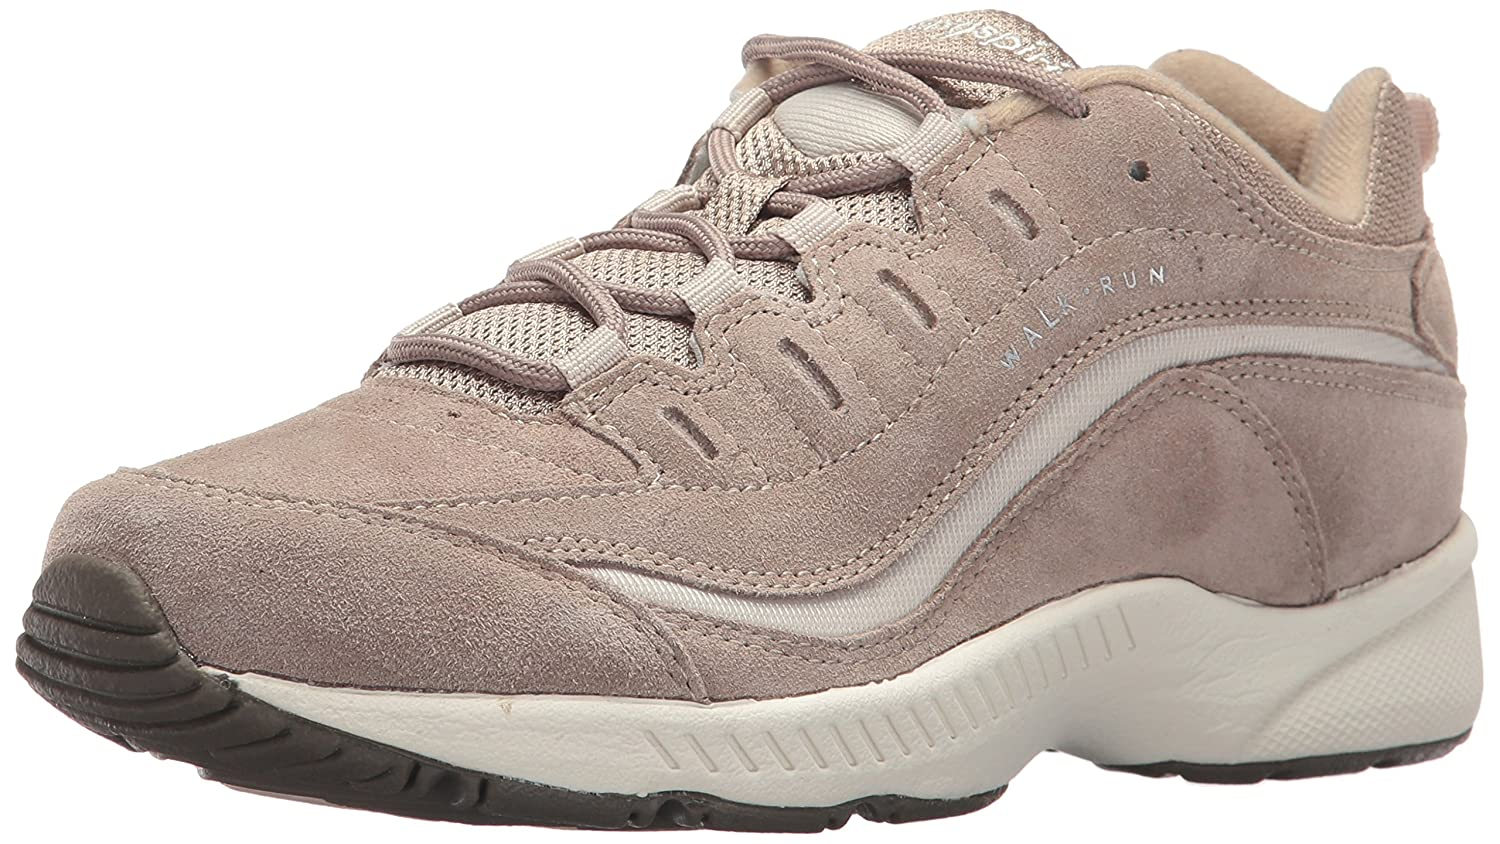 Easy Spirit Women's Romy Walking Shoe B071RD5P2B 8.5 W US|Medium Taupe Multi Suede